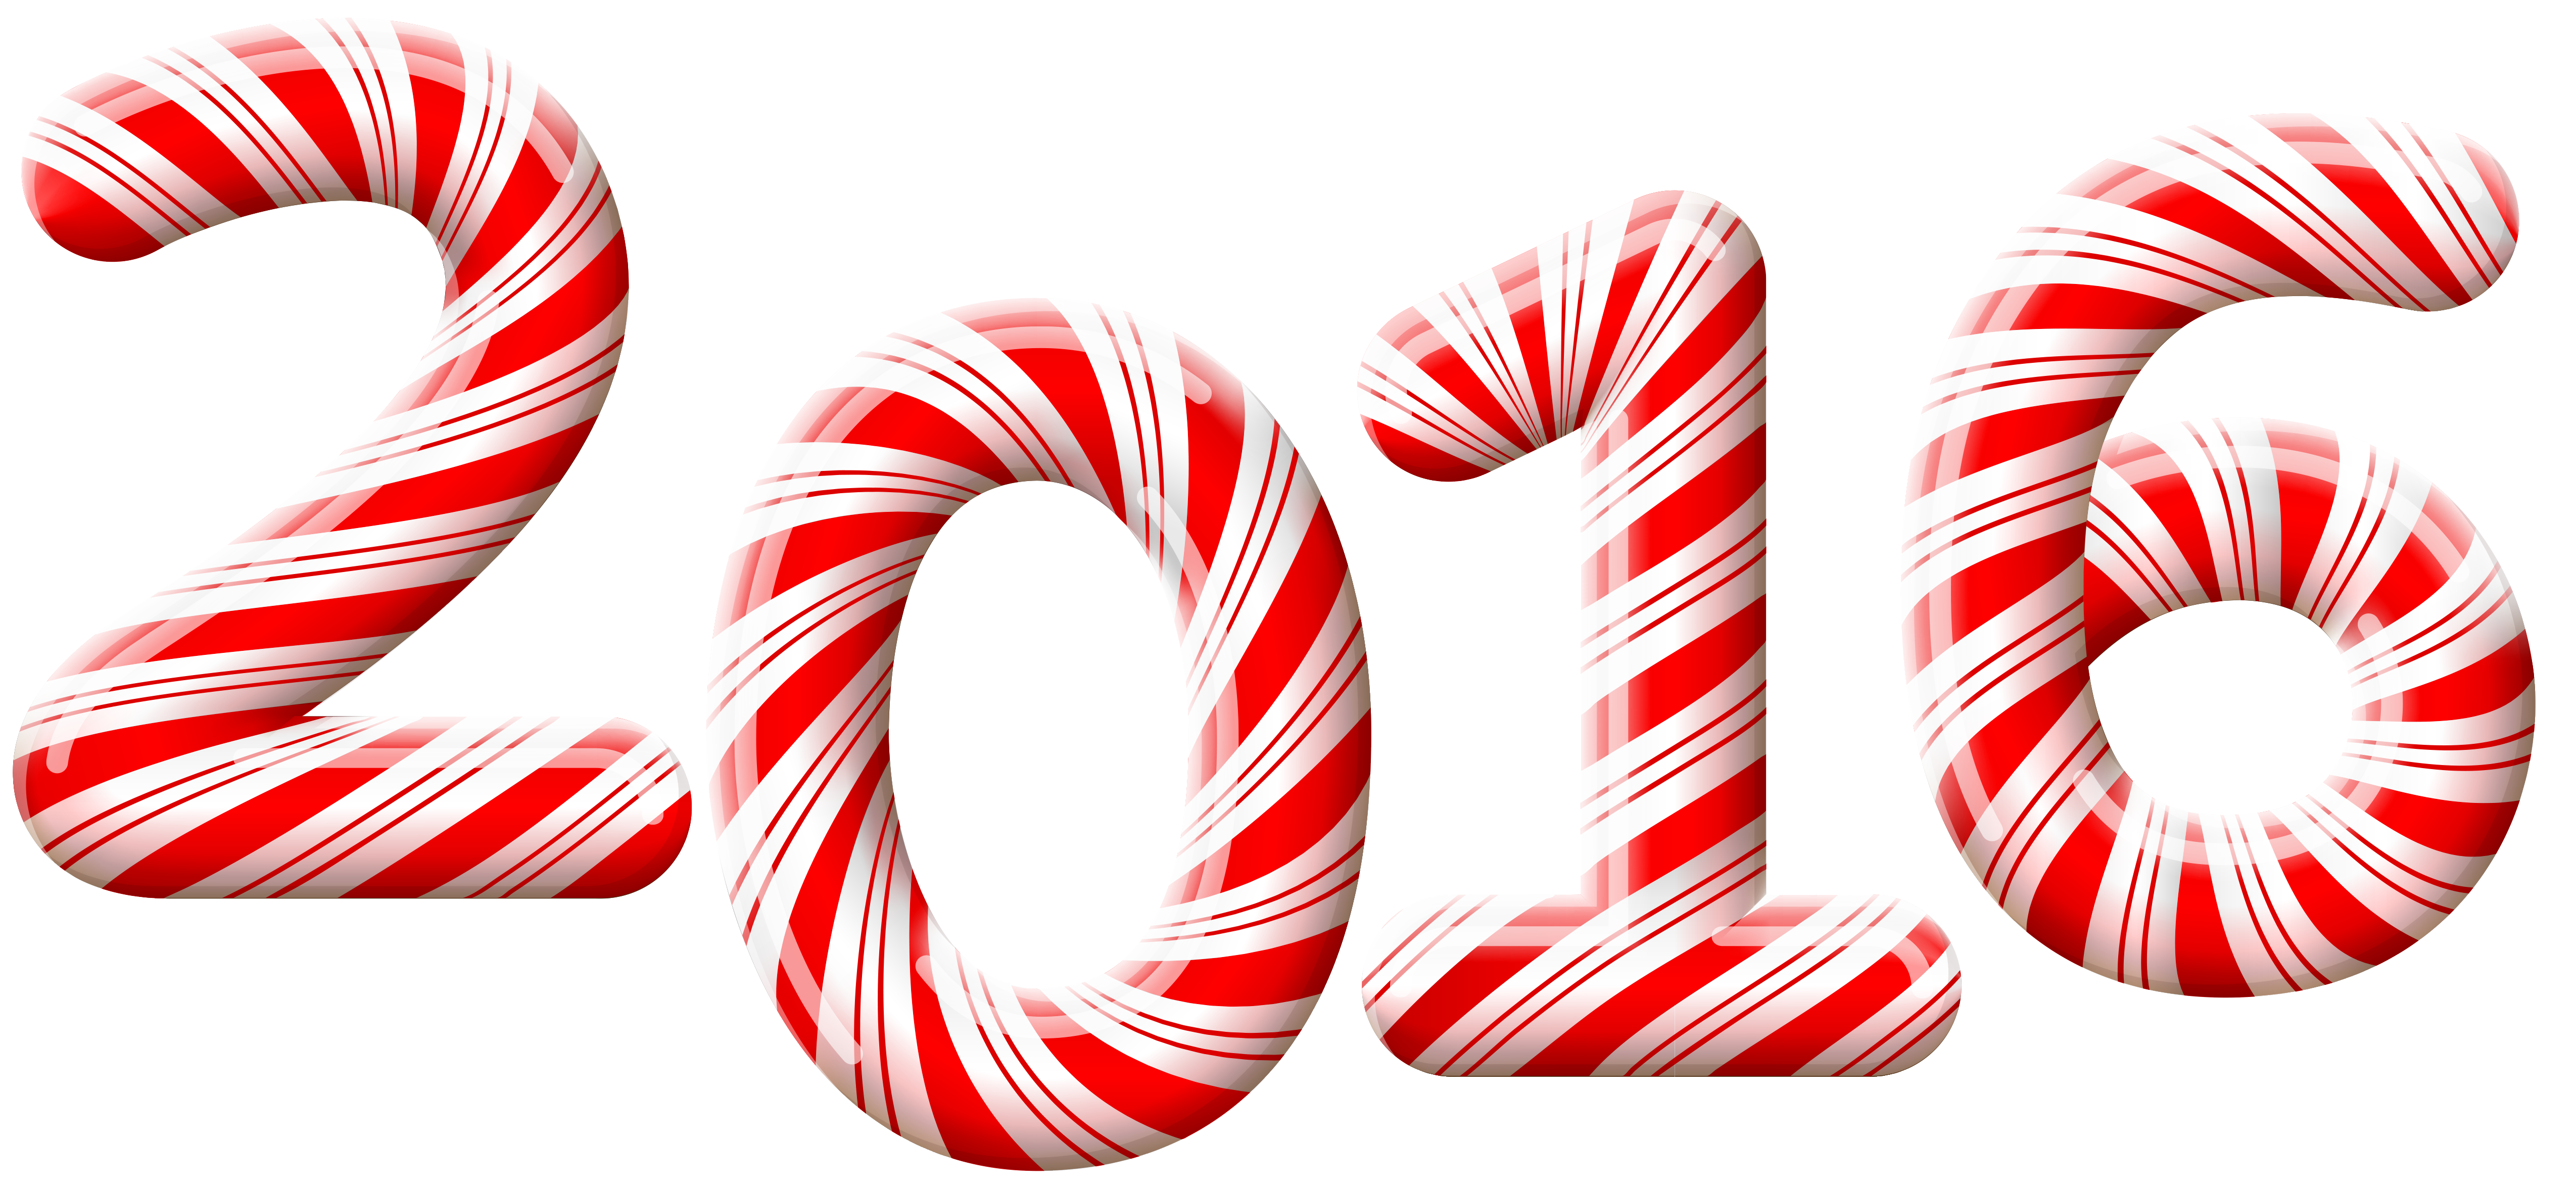 2016 clipart. Candy cane png